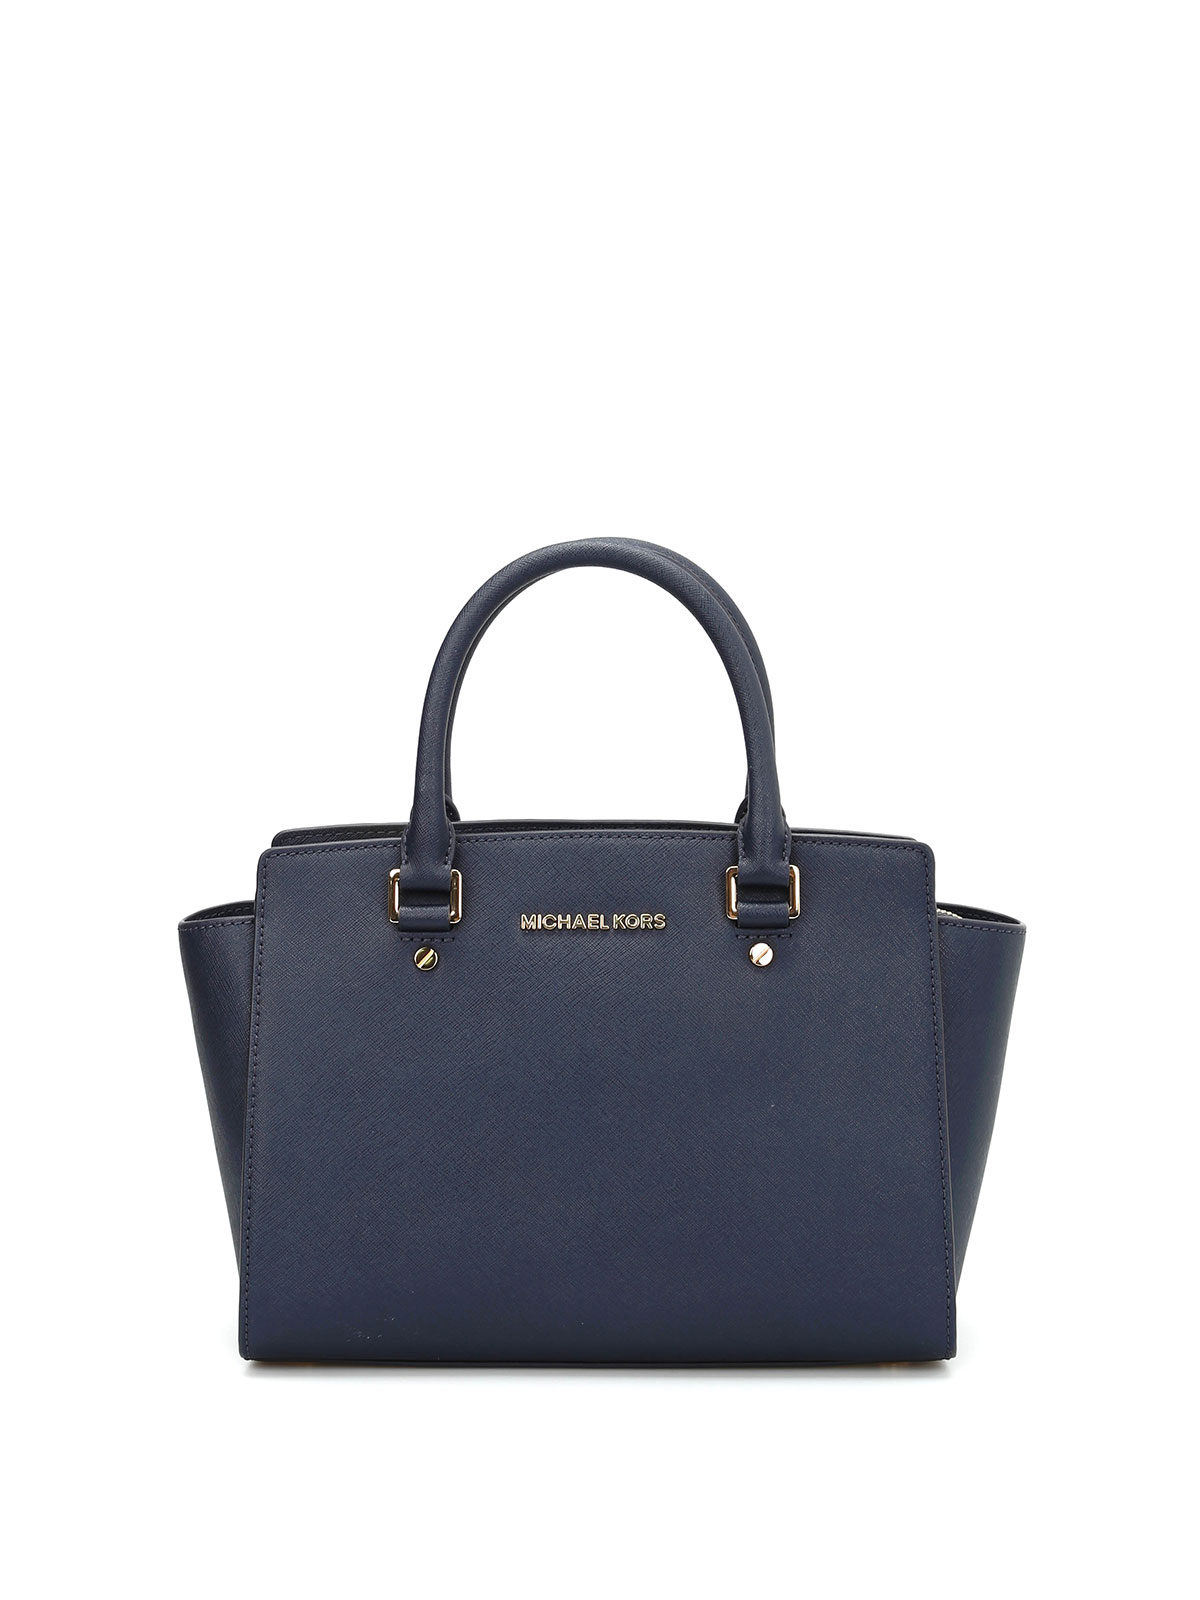 selma medium saffiano top zip tote by michael kors totes bags shop online at. Black Bedroom Furniture Sets. Home Design Ideas